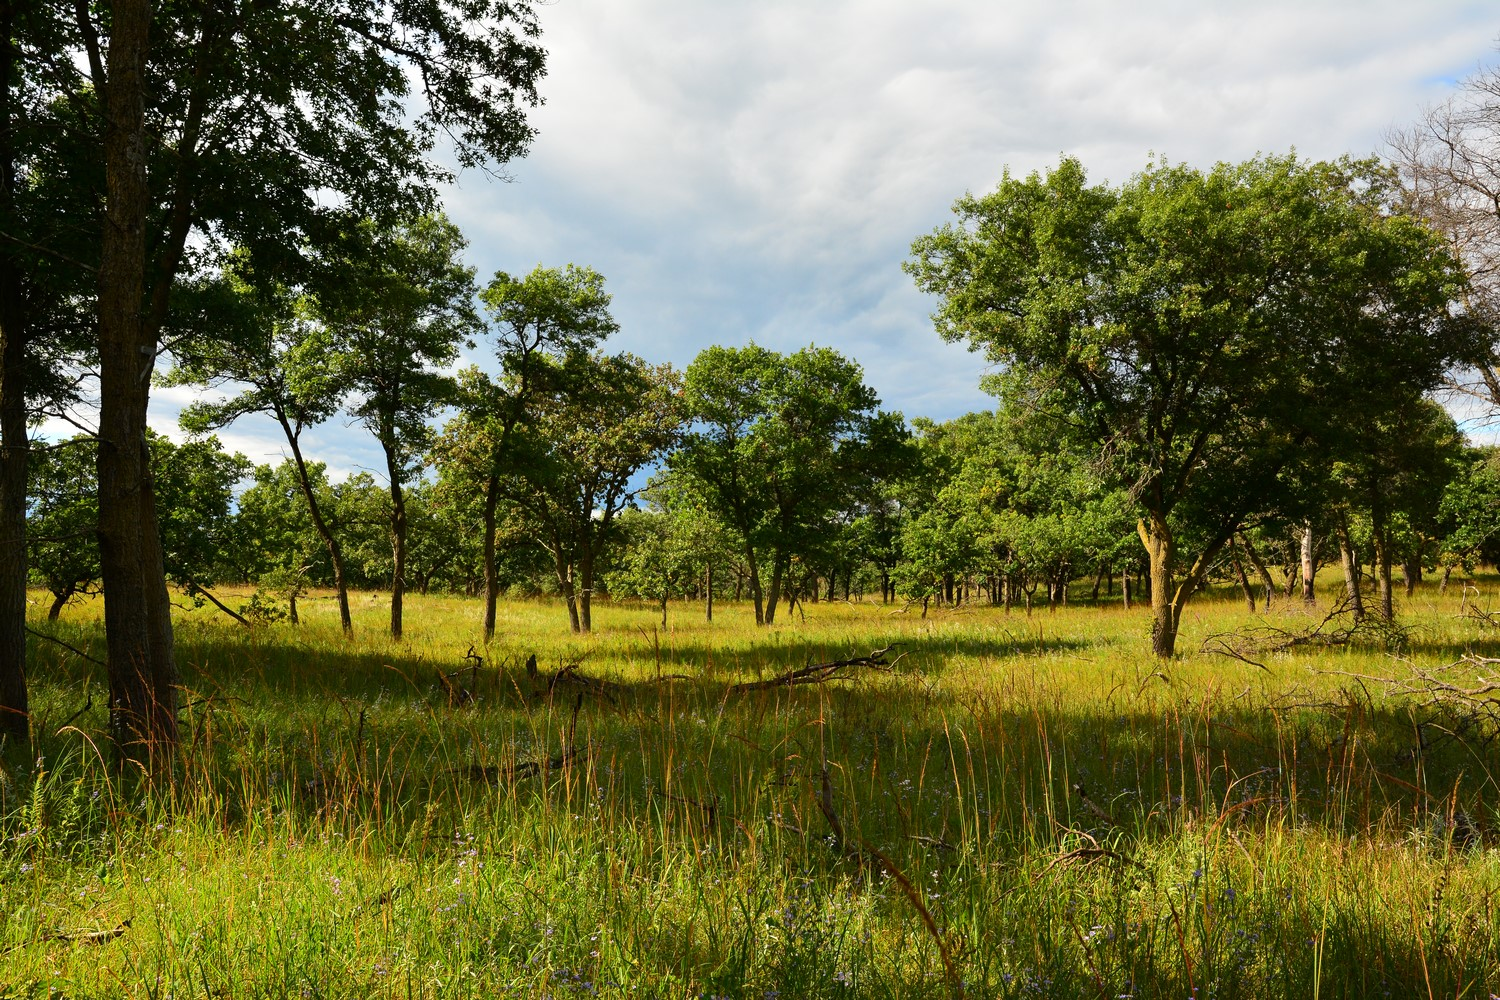 savannah grassland with trees